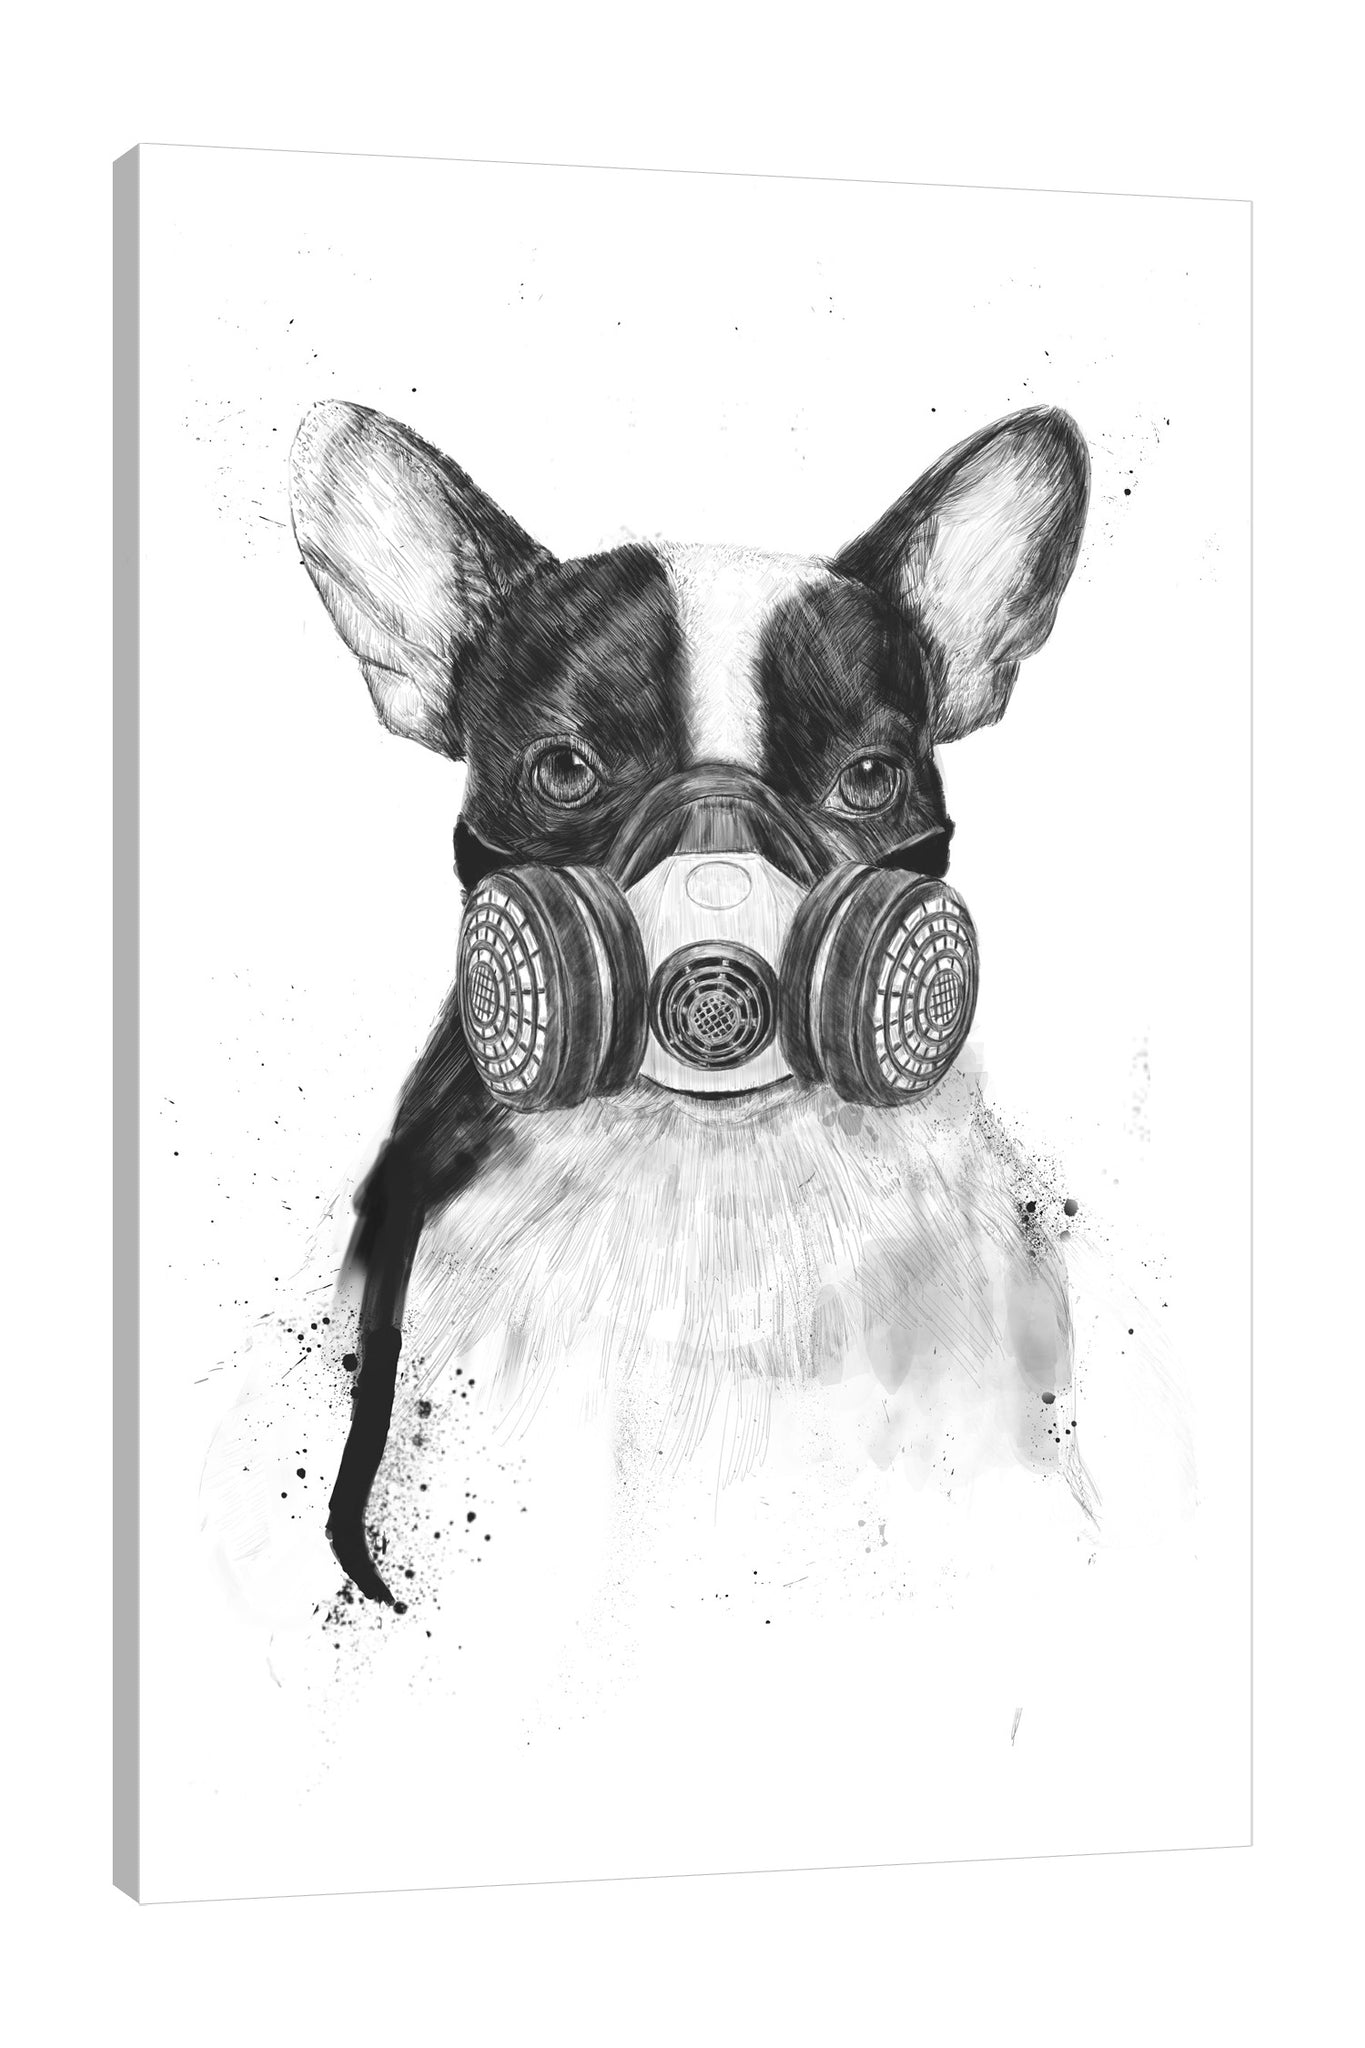 Balazs-Solti,Modern & Contemporary,Animals,animals,animal,pug,pugs,black and white,mask,masks,face mask,face masks,splatters,splatter,Mist Gray,Tan White,Charcoal Gray,Gray,White